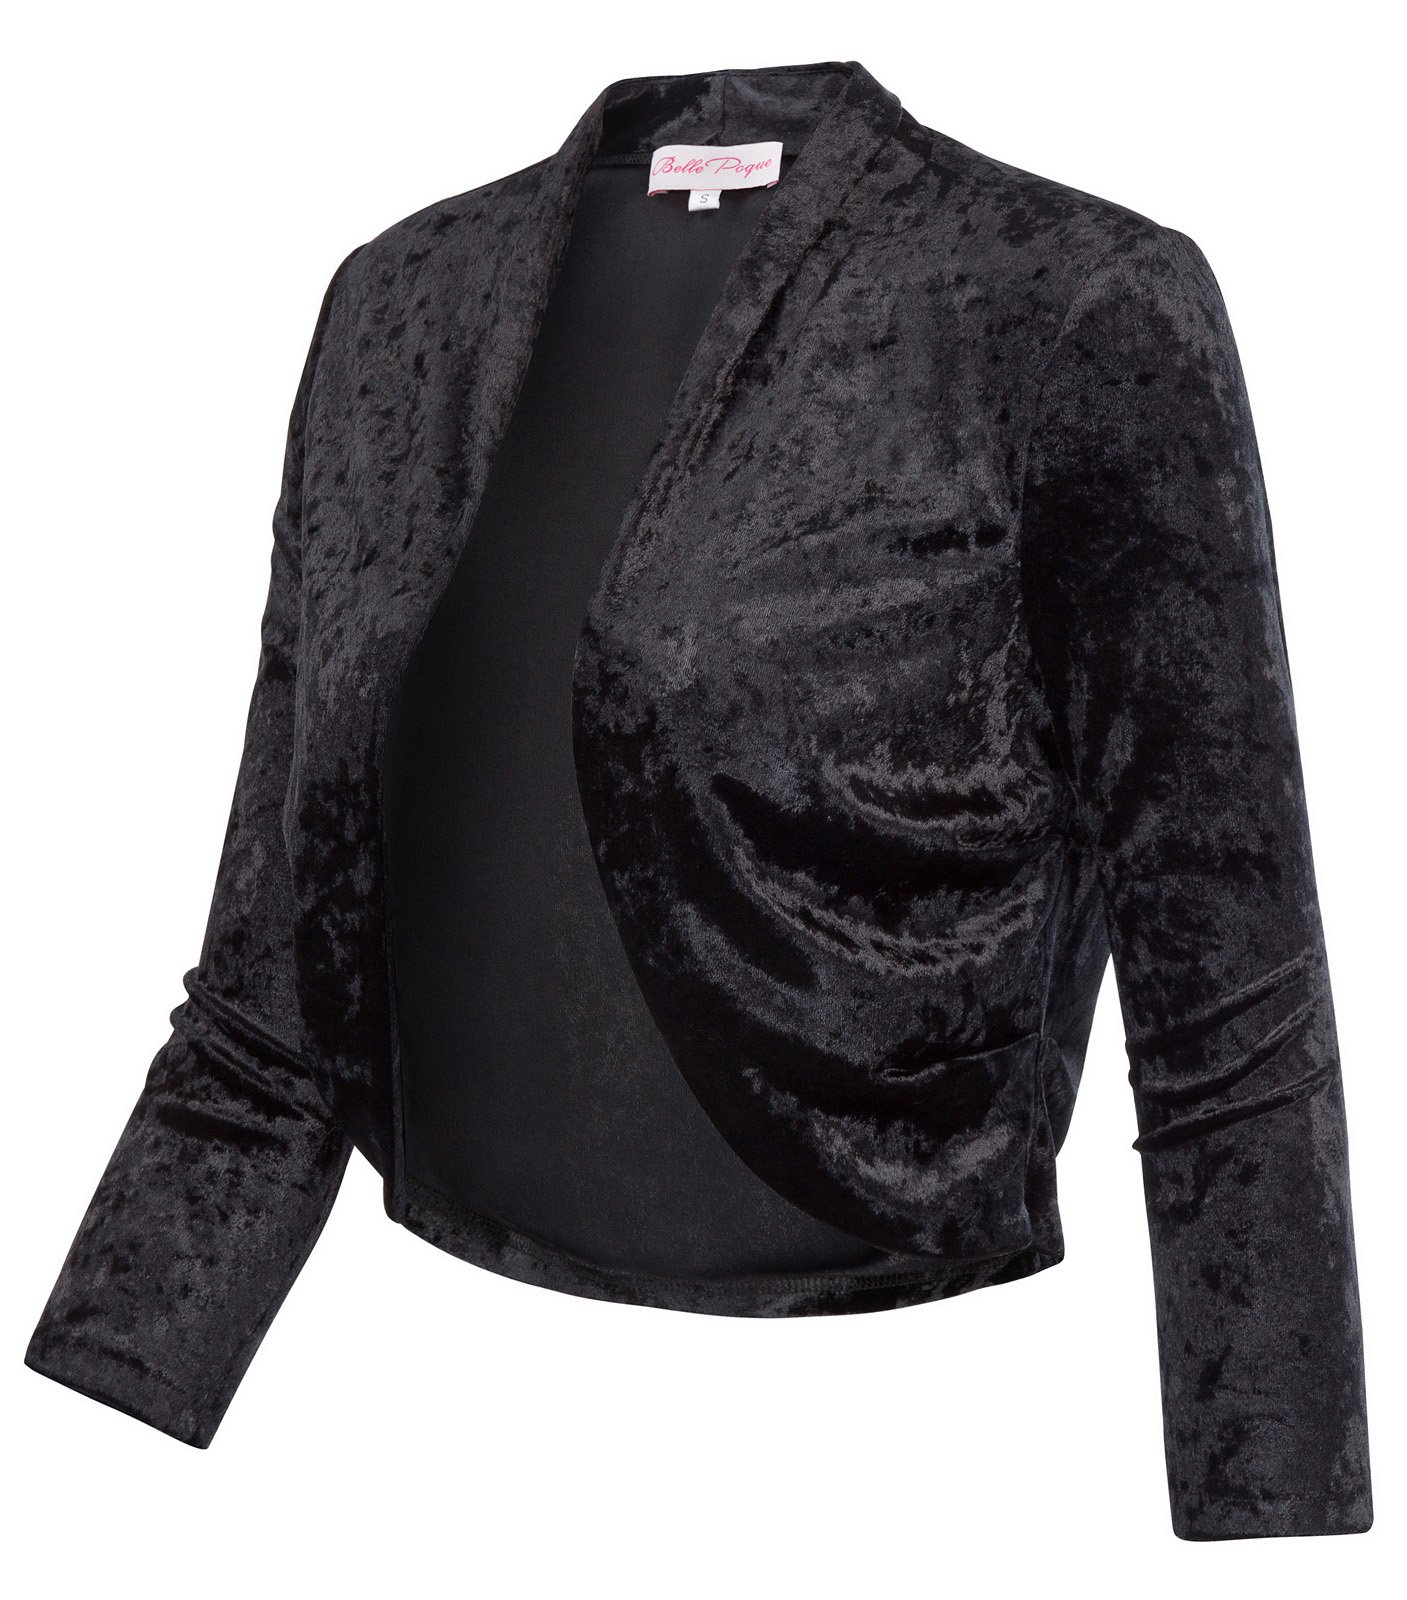 Solid Sleeves Bolero Outerwear Open Front for Teen Girls (L,Black 513-1) by JS Fashion Vintage Dress (Image #5)